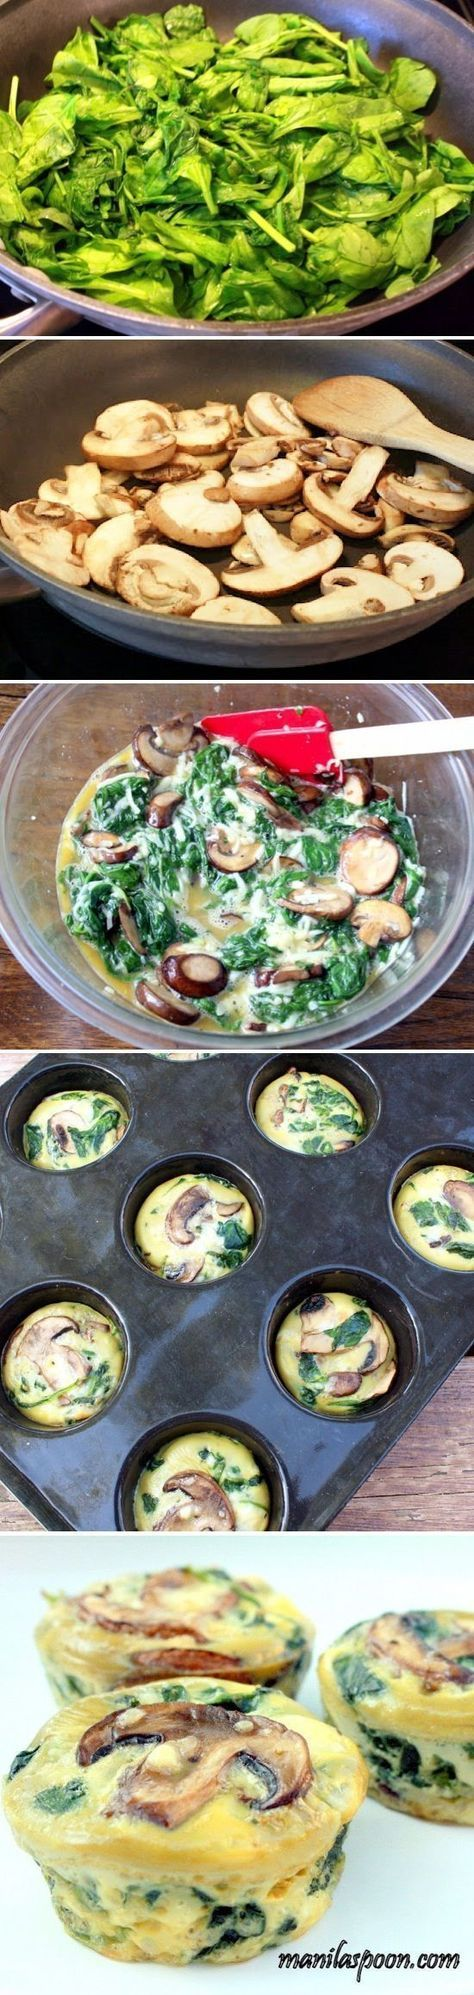 Spinach Egg Cups Healthy Breakfast Recipes - breakfast, gluten free, healthy, recipes, vegetarian